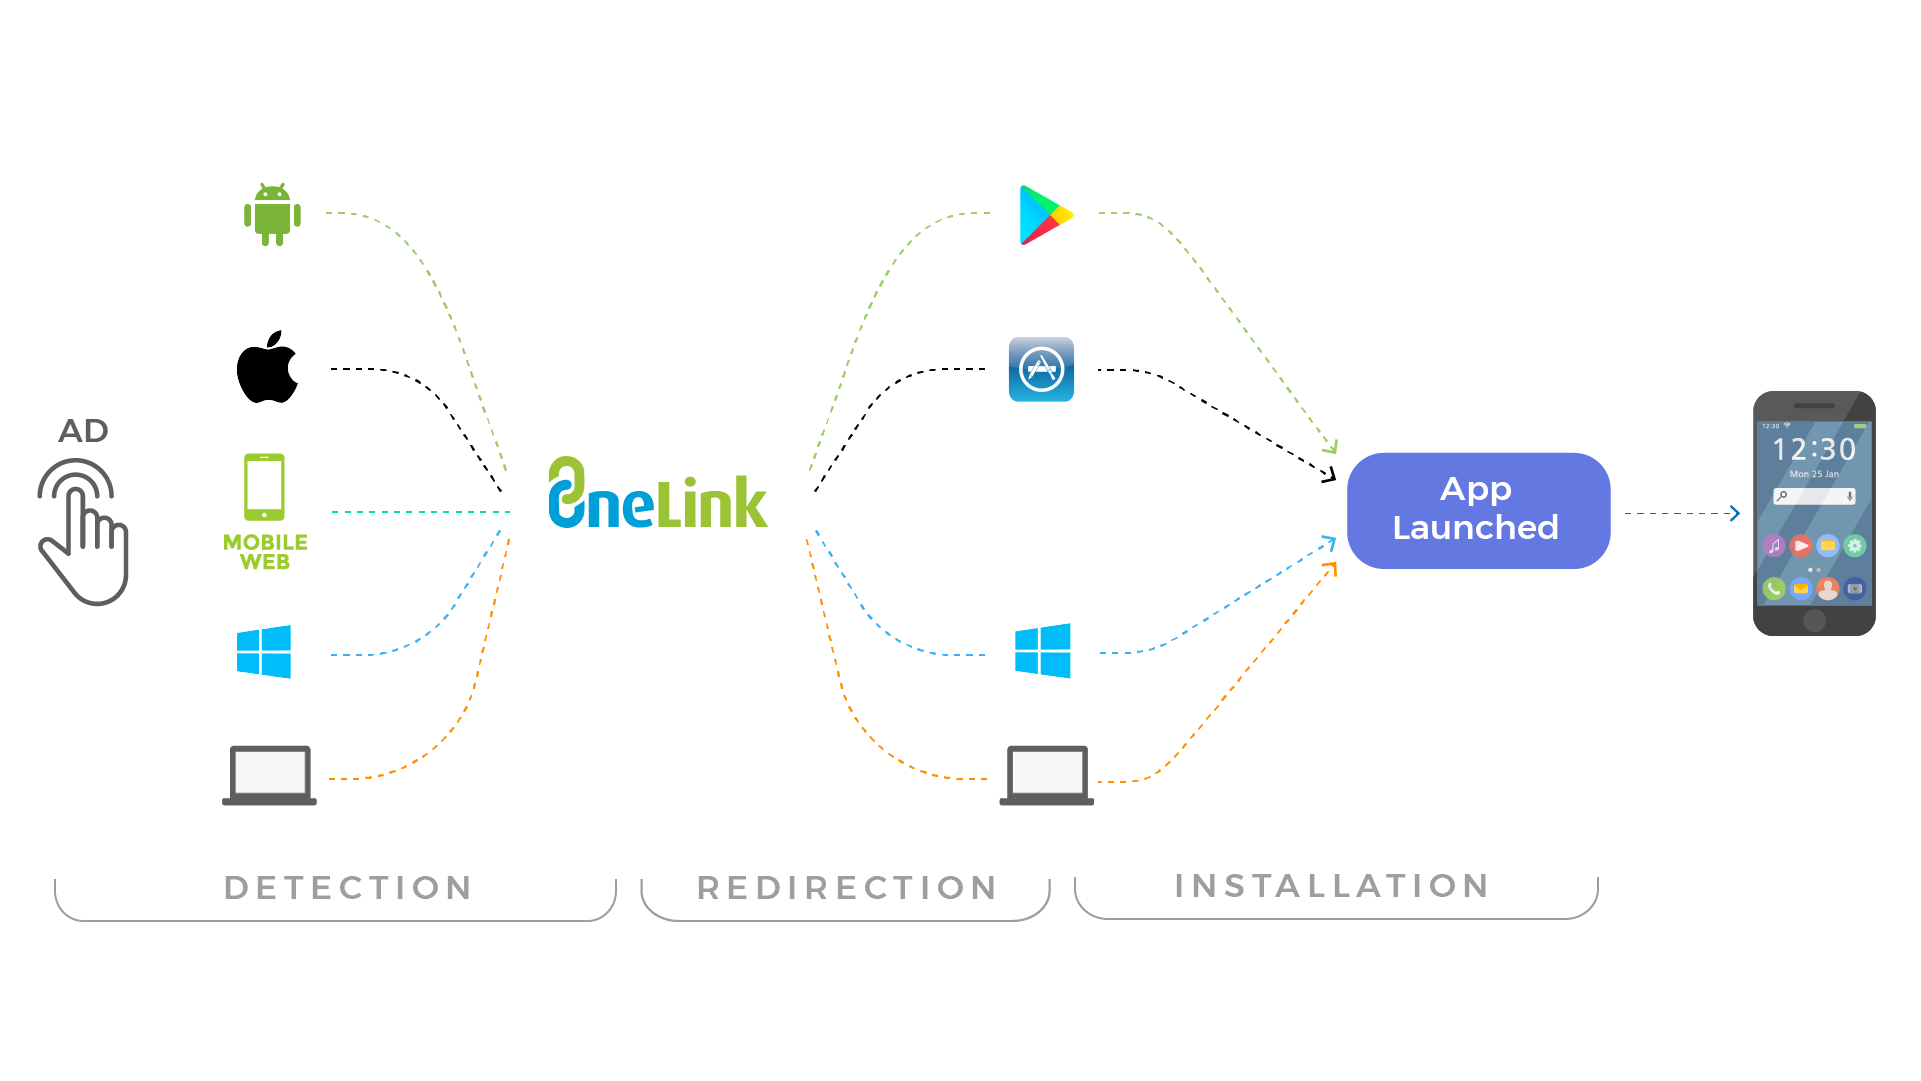 onelink_redirections